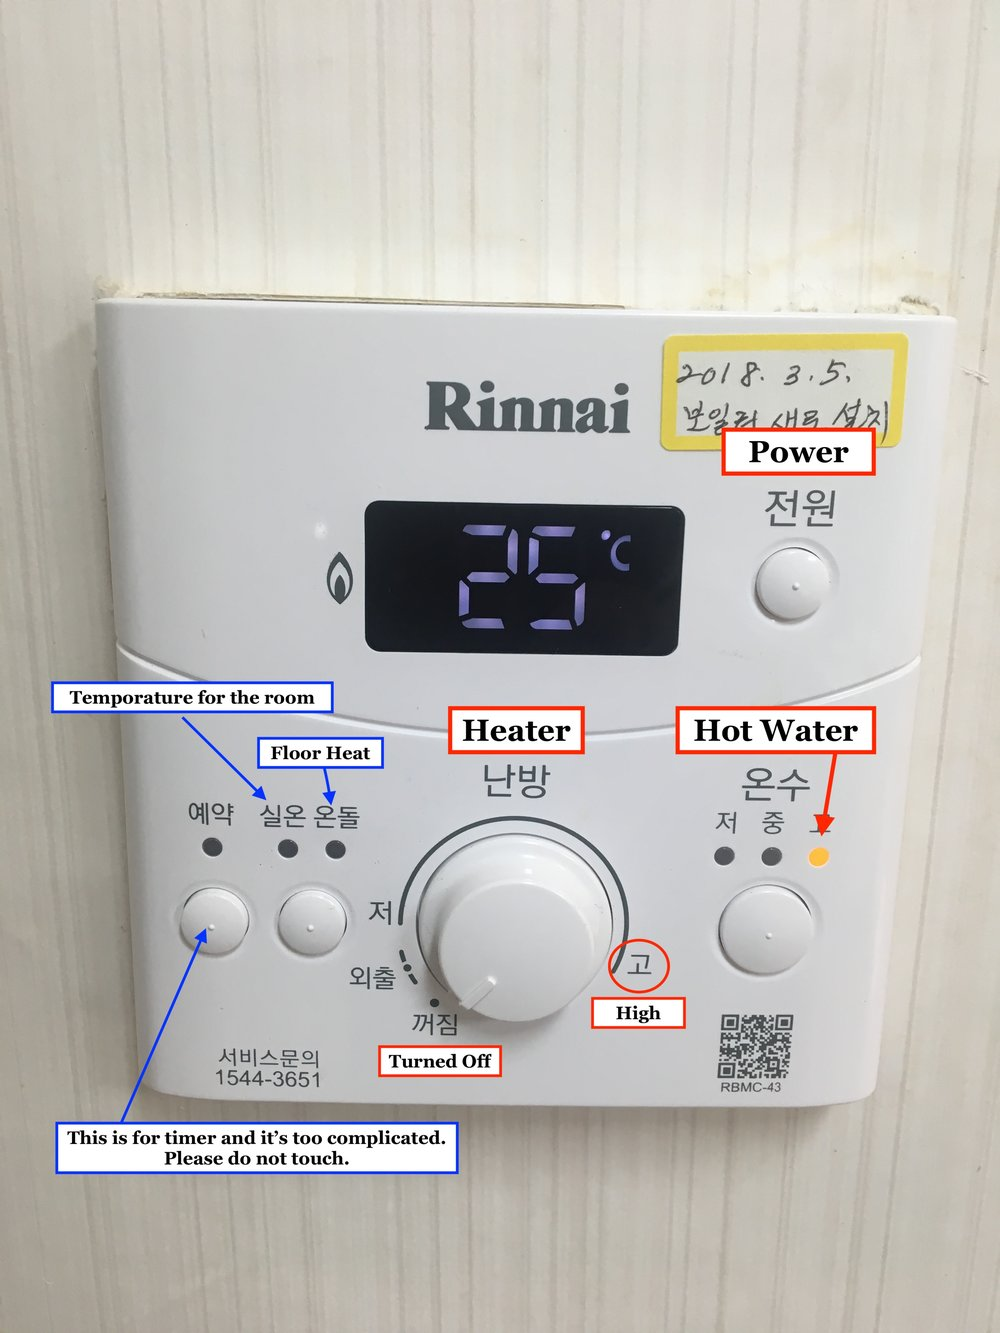 Heater instruction - In order to use hot water, 온수 (hot water)light should be on. 전원 is power. In the winter time, you will use 난방 (floor heater). When you turn the knob, you will be able to choose your comfortable temperature.* Usually 22degree would be warm enough. It will take about 15-20 mins for the room to feel warm.